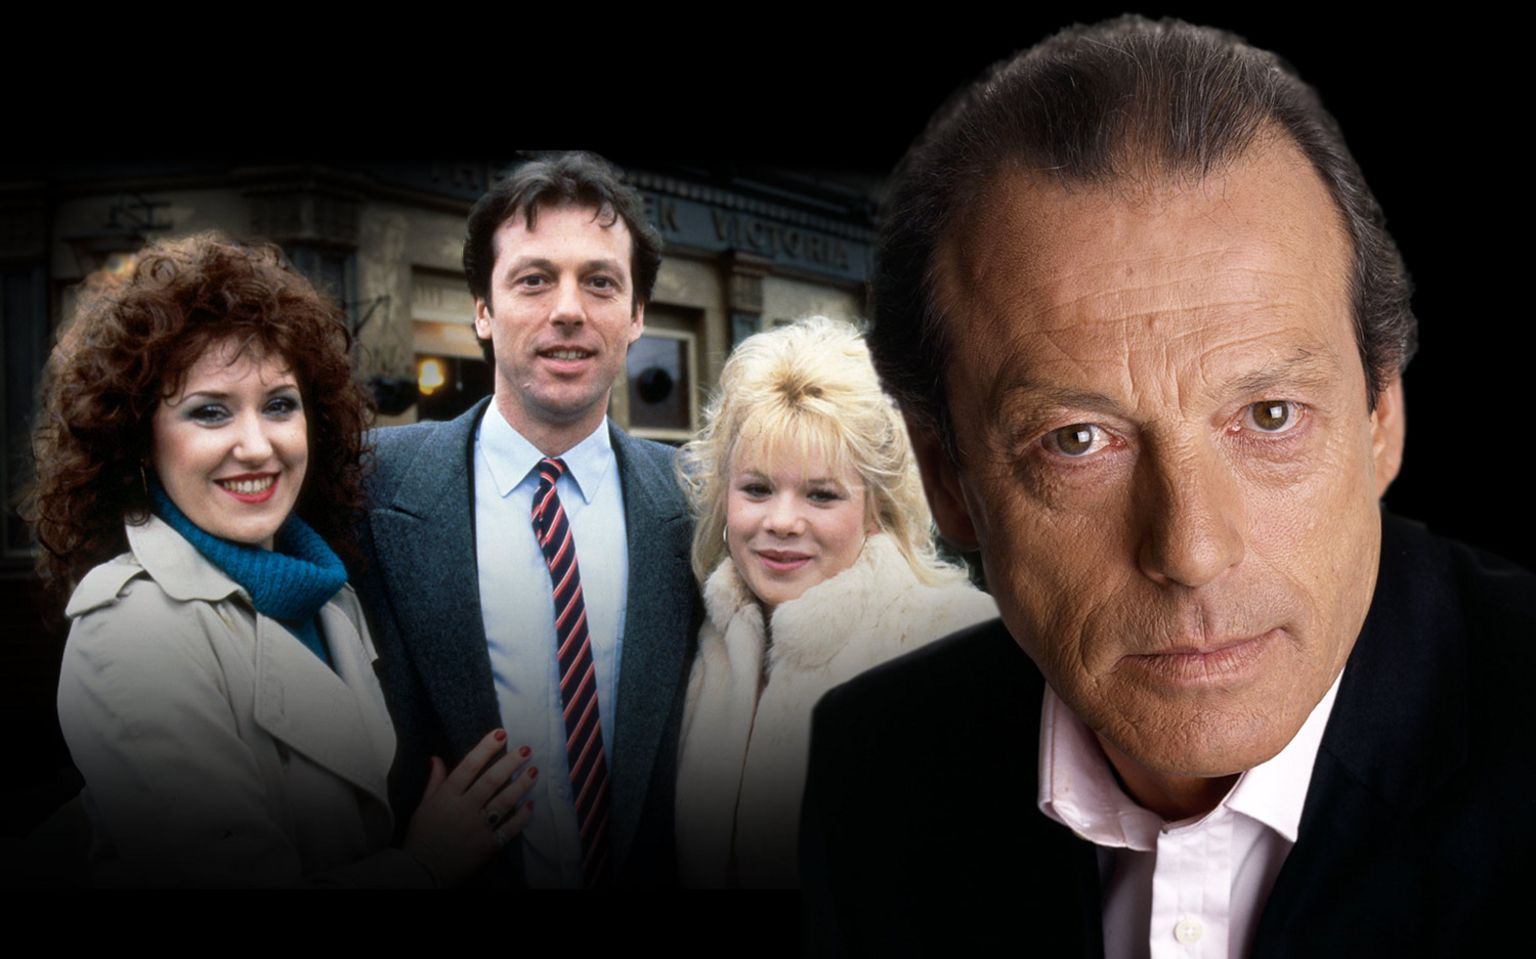 Leslie Grantham - with Anita Dobson and Letitia Dean